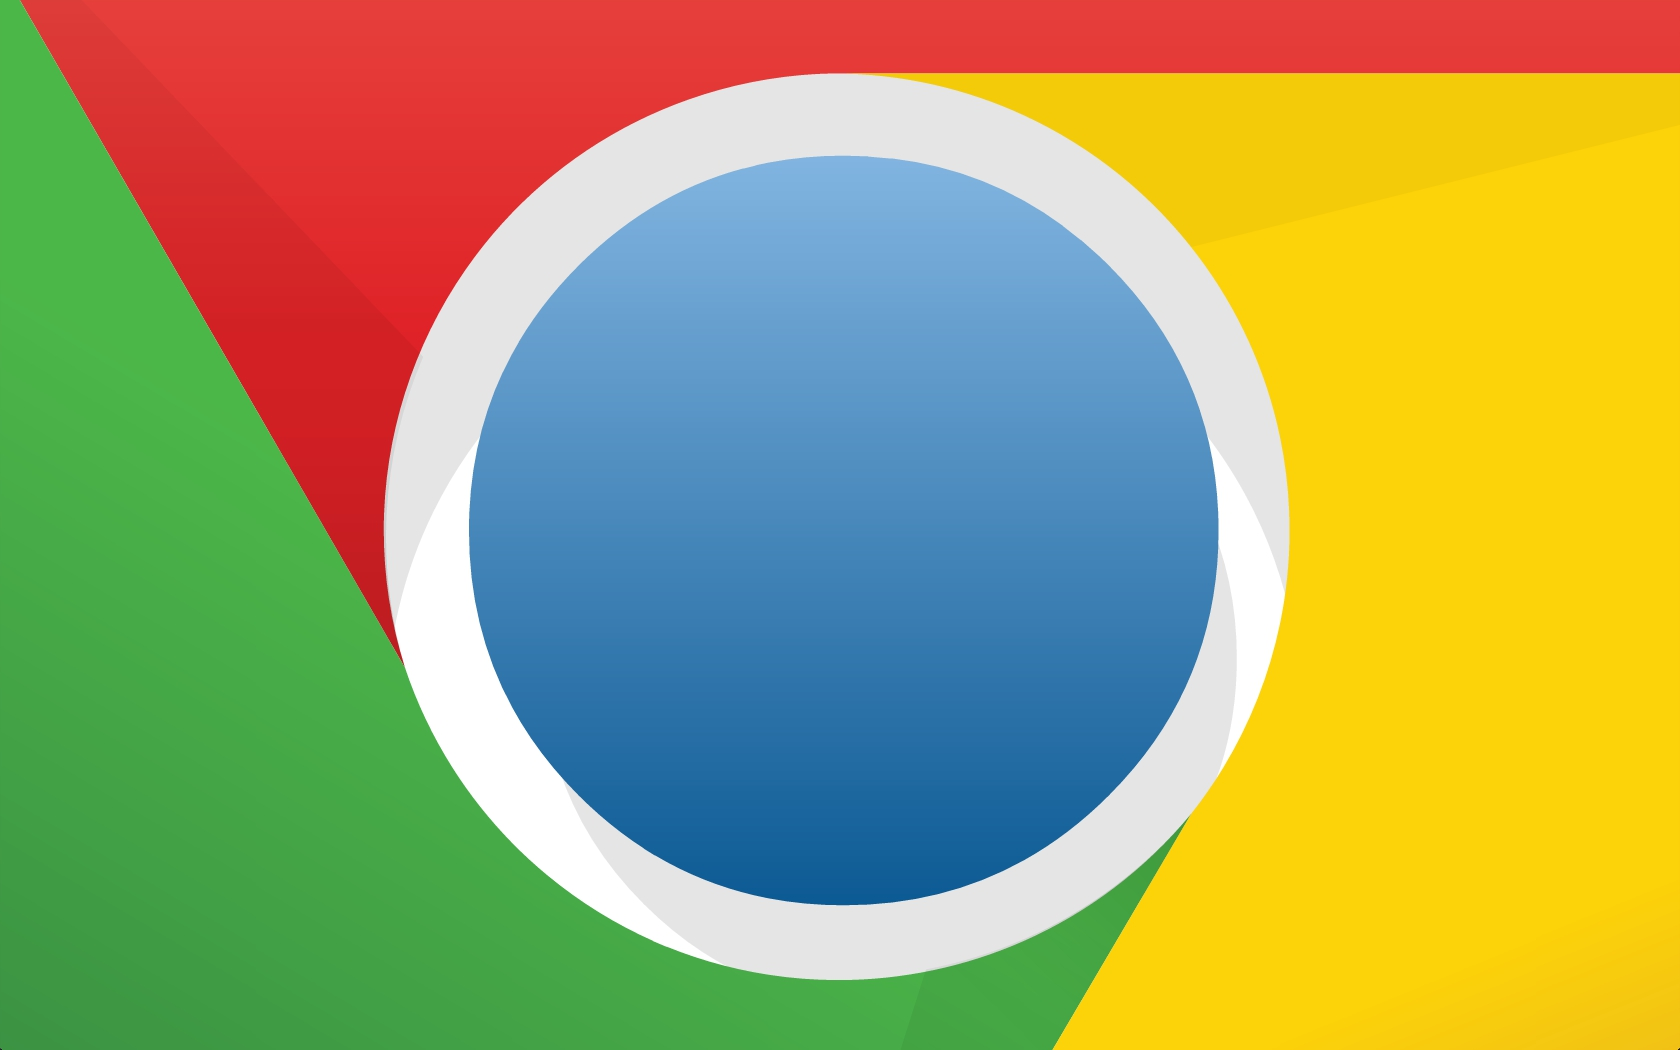 Google Chrome 64 beta finally lets you mute autoplay videos in Chrome